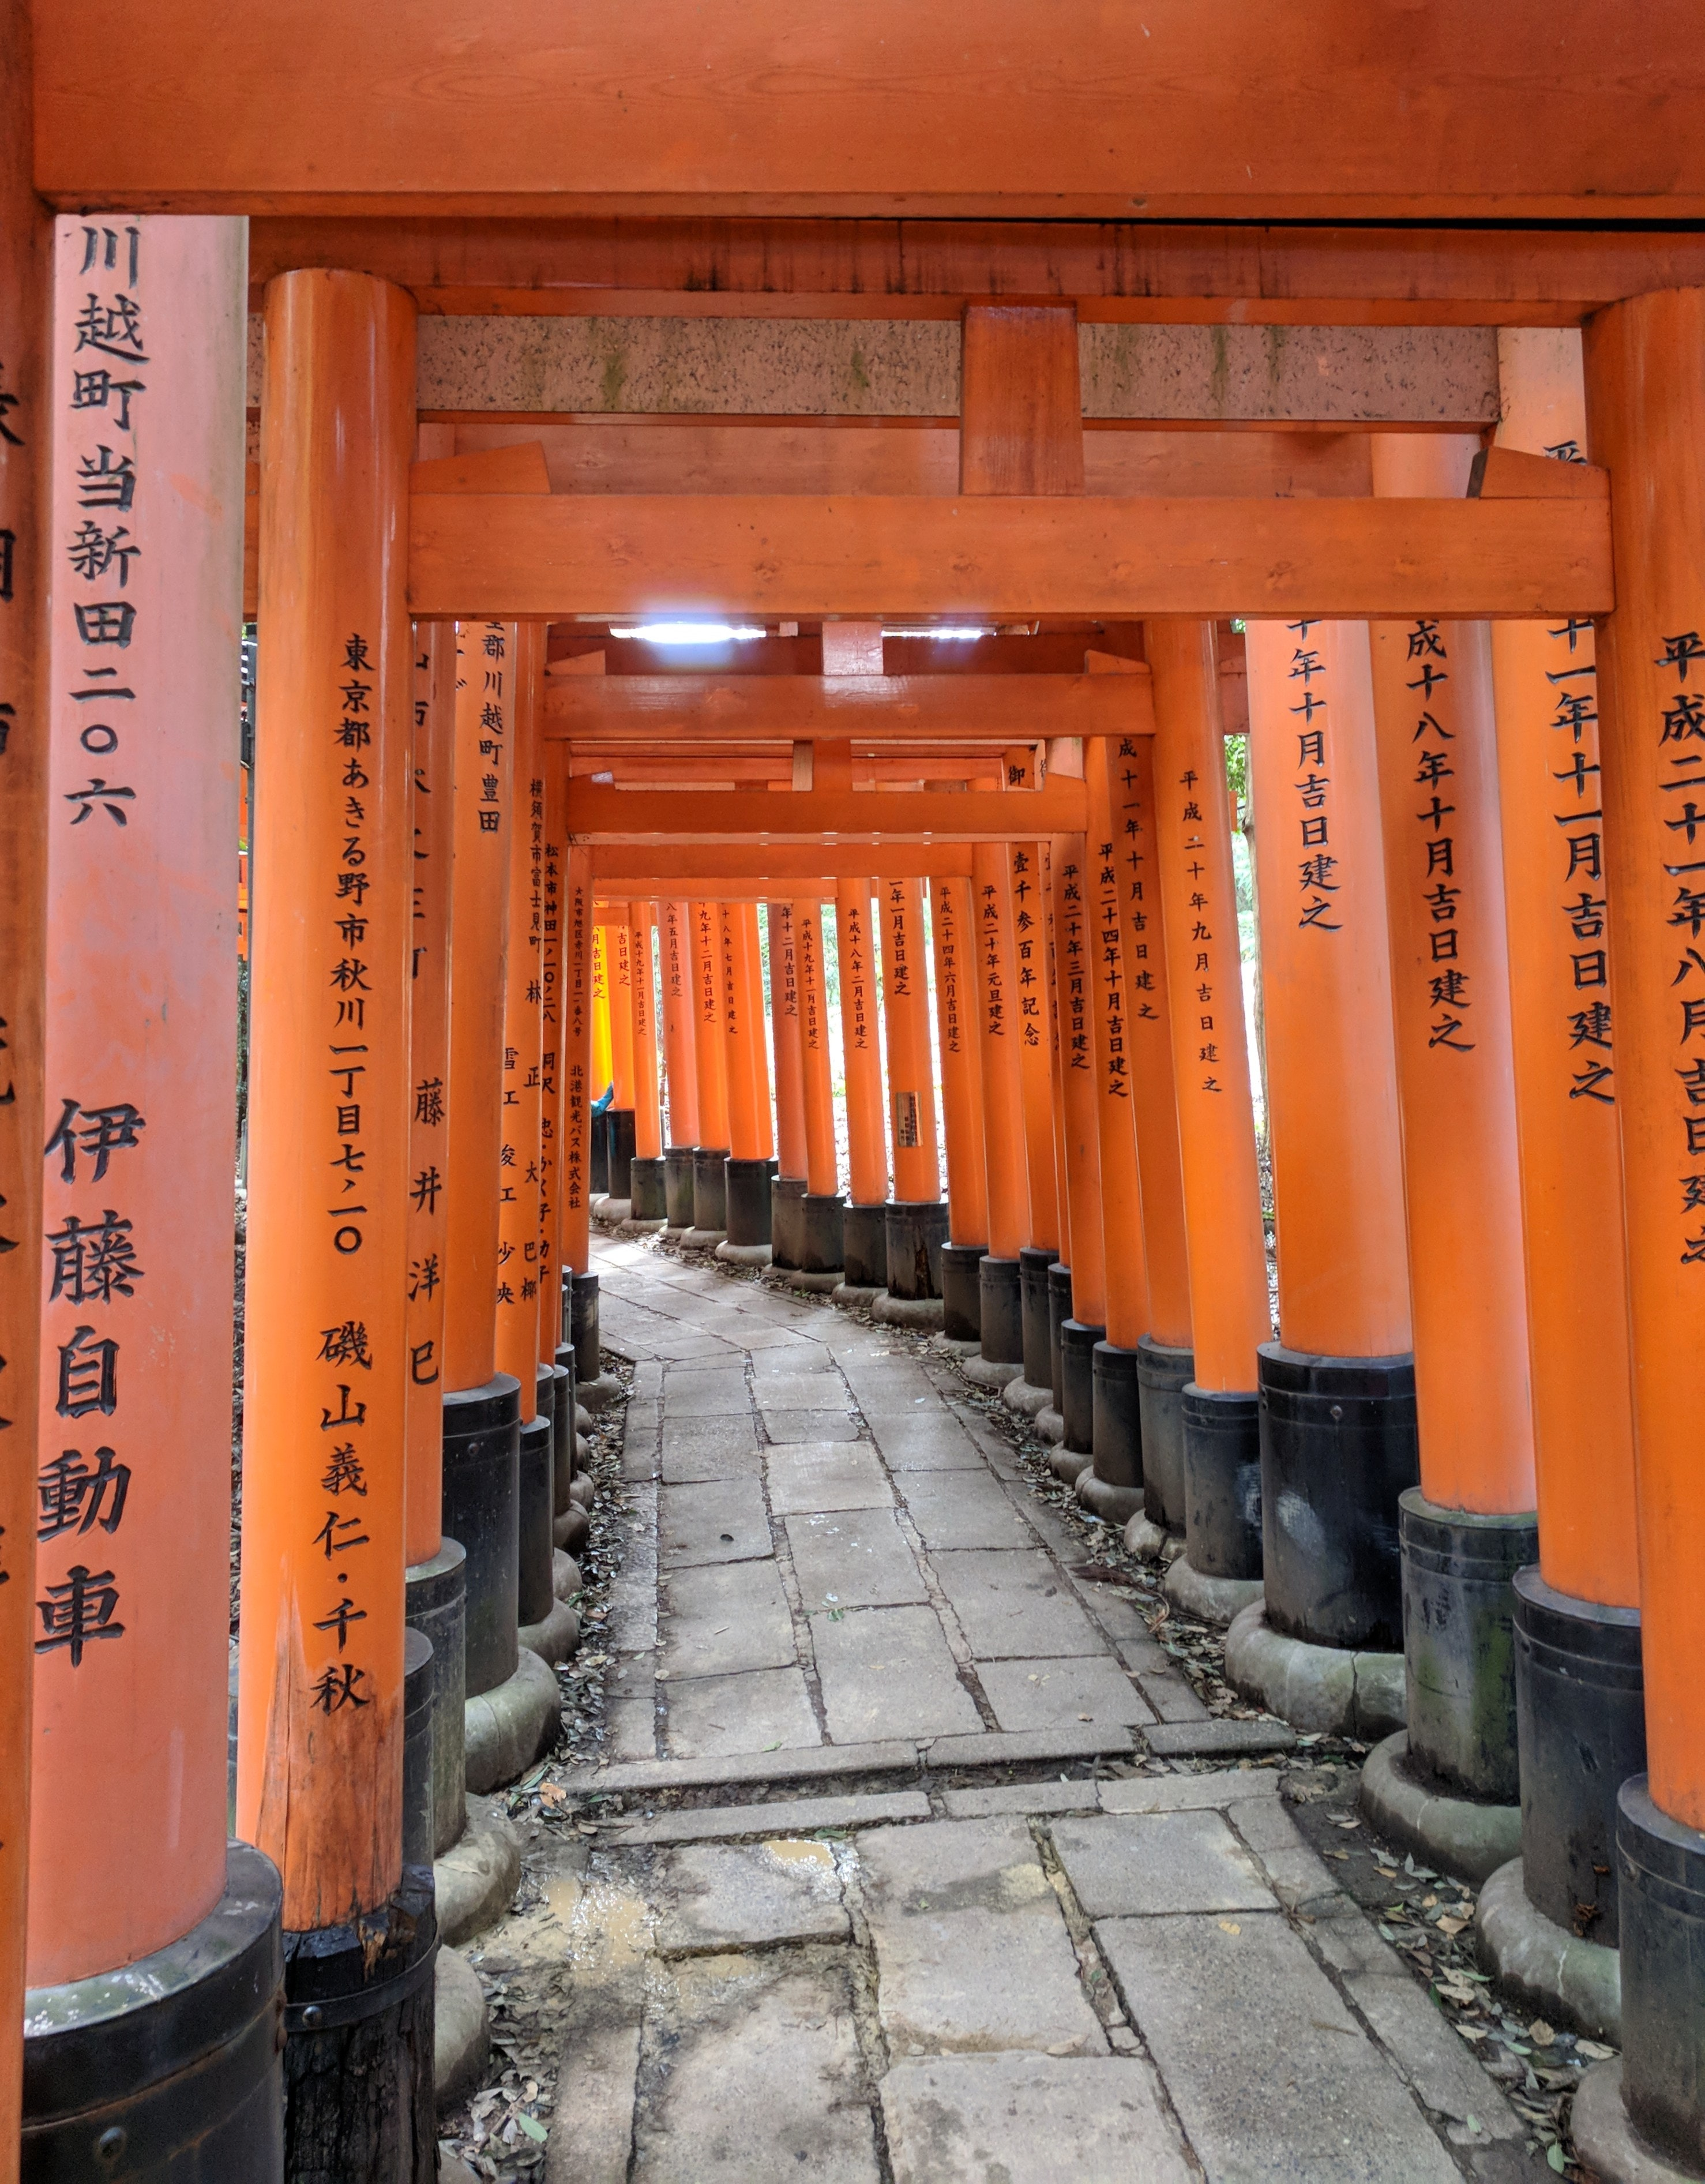 Free stock photo of Fushimi Inari